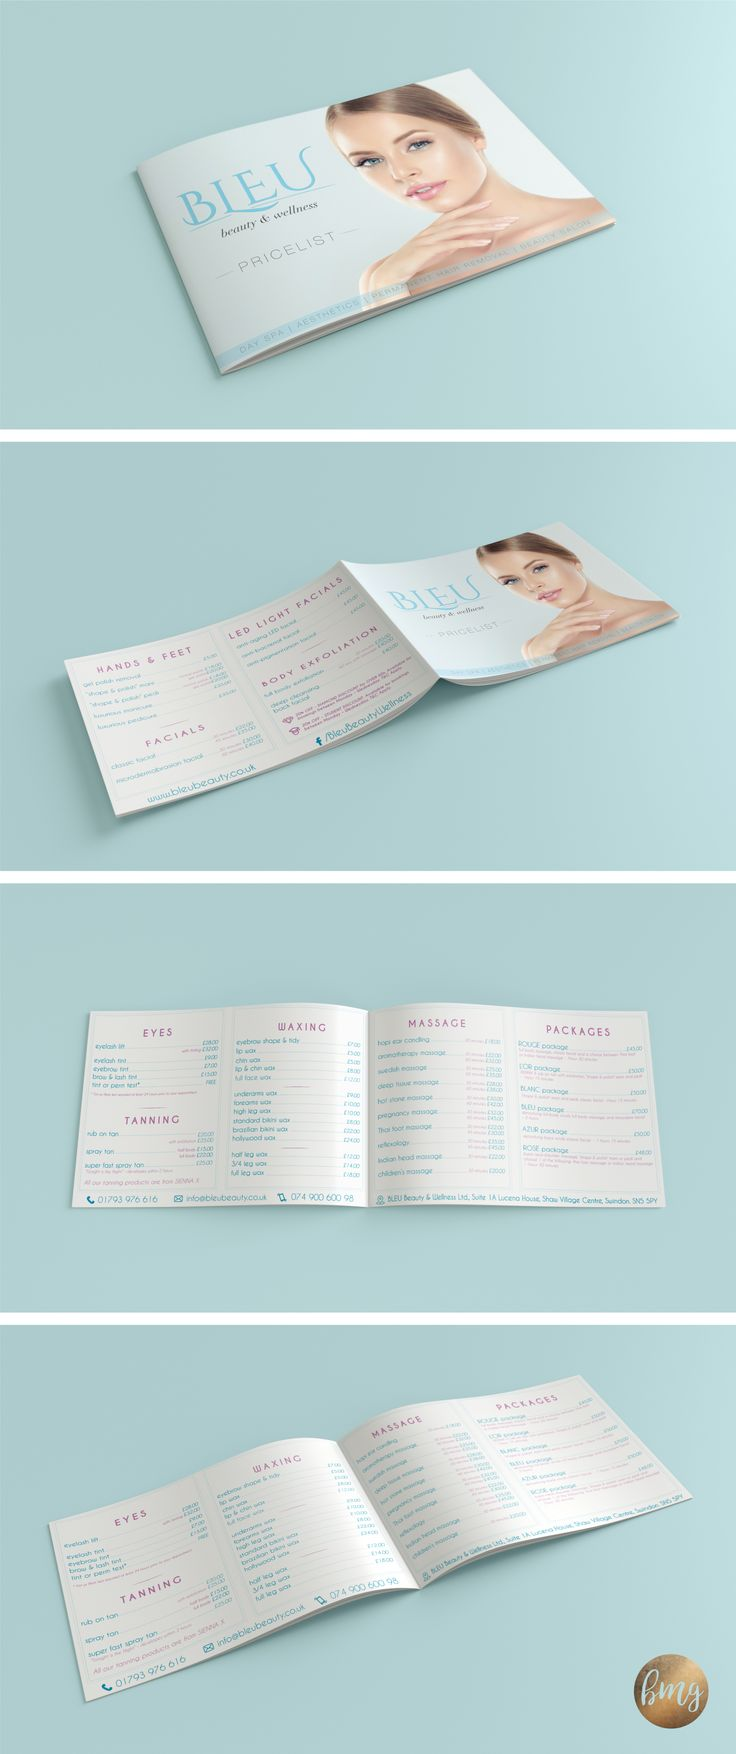 Price list design for local Day Spa & Aesthetic Clinic @BLEU Beauty & Wellness  https://www.beautymarketingguru.com/  #pricelist #logo #logodesign #marketing #beauty #beautymarketing #salonmarketing #beautysalon #spa #spamarketing #dayspa #botox #fillers #designforspa